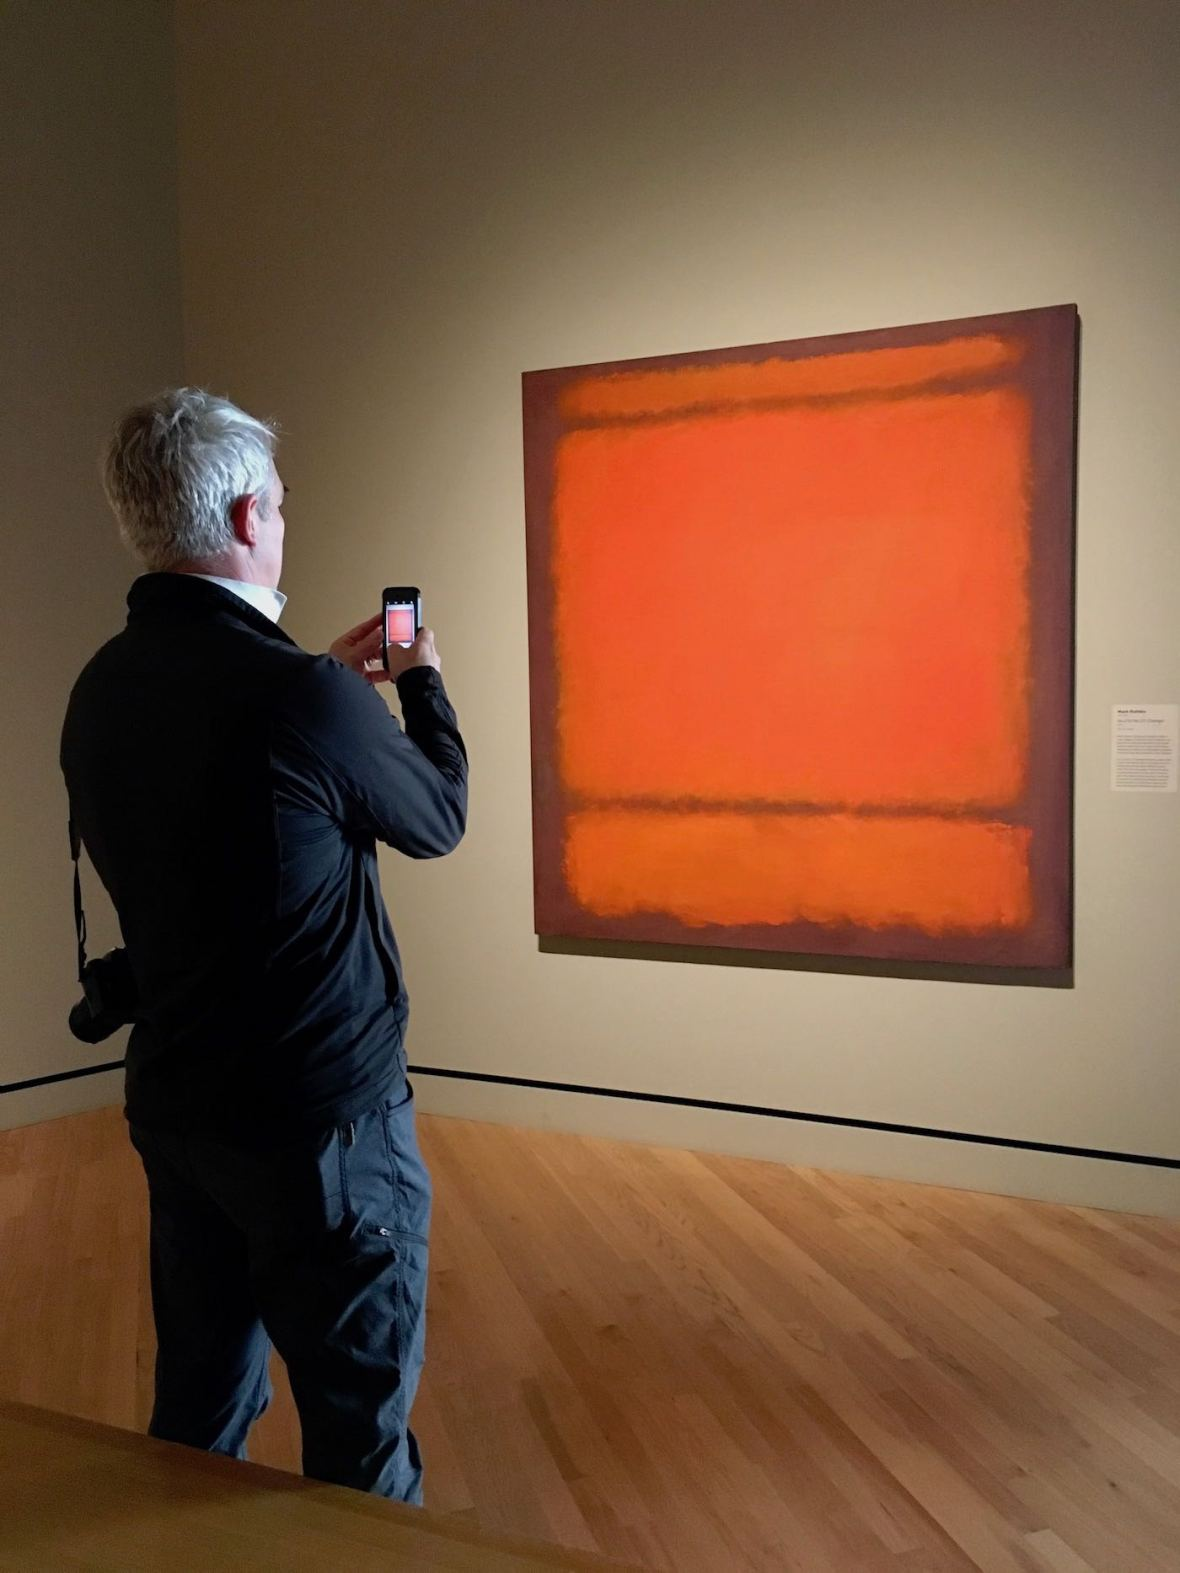 No. 210/No. 211 (Orange) painting by Mark Rothko at Crystal Bridges Museum of American Art